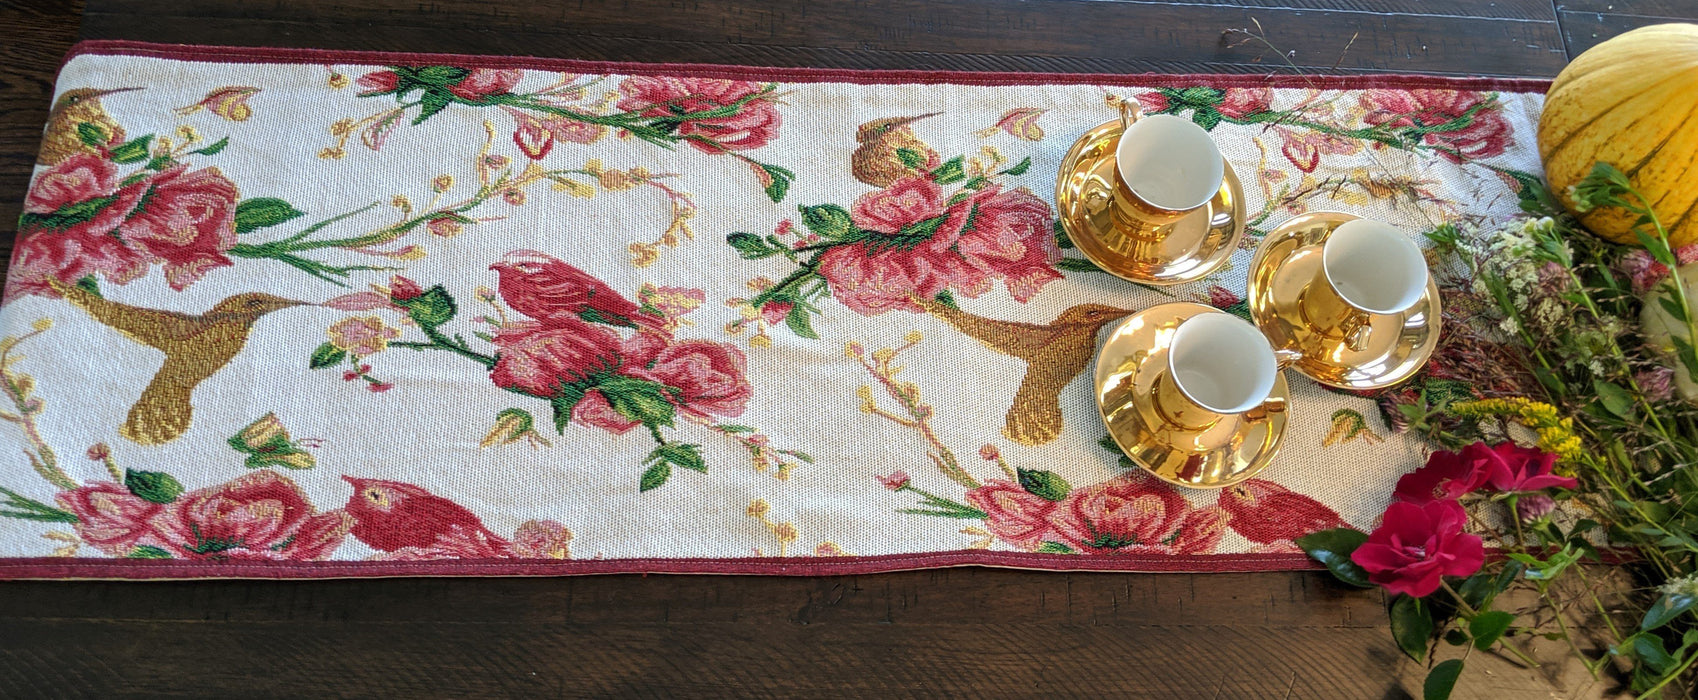 Tache Floral Red Roses Birds Ivory Woven Tapestry Table Runner (18109) - Tache Home Fashion